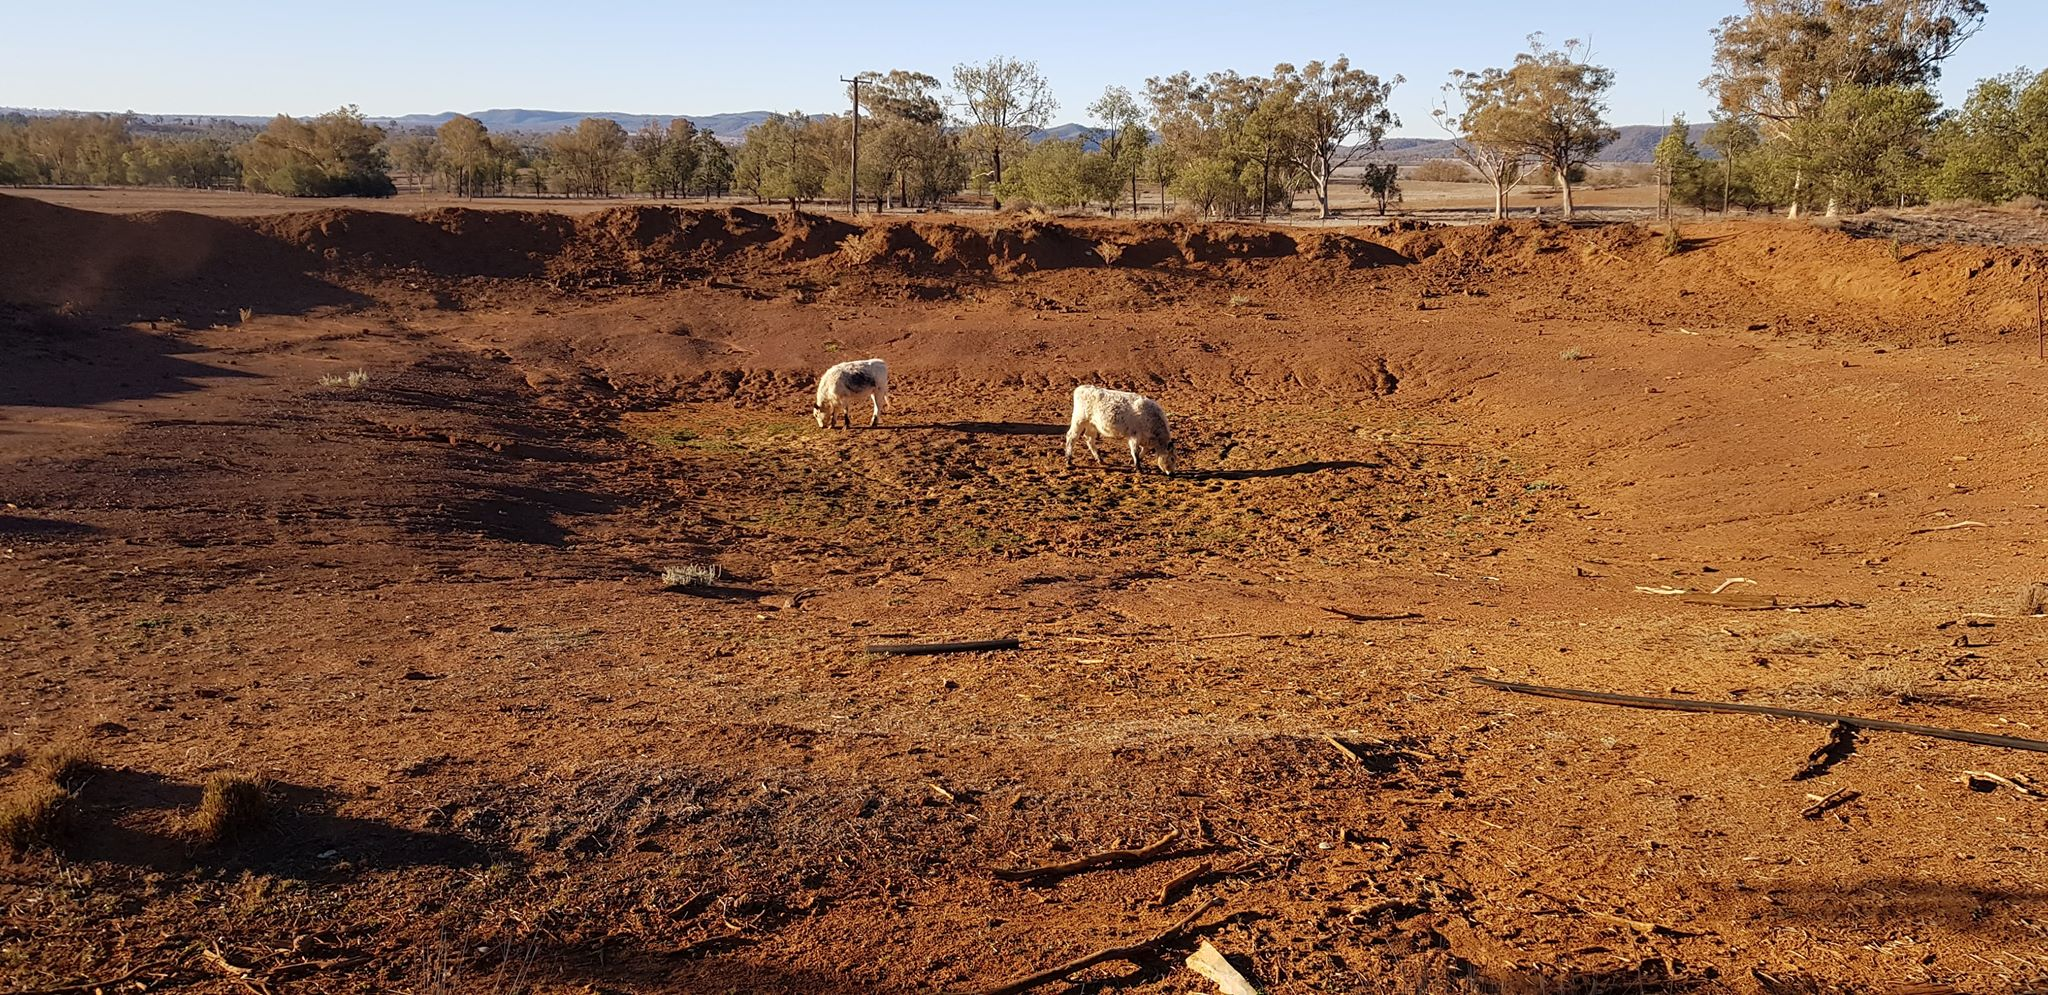 Their remaining cattle search for food and water in a dry dam.